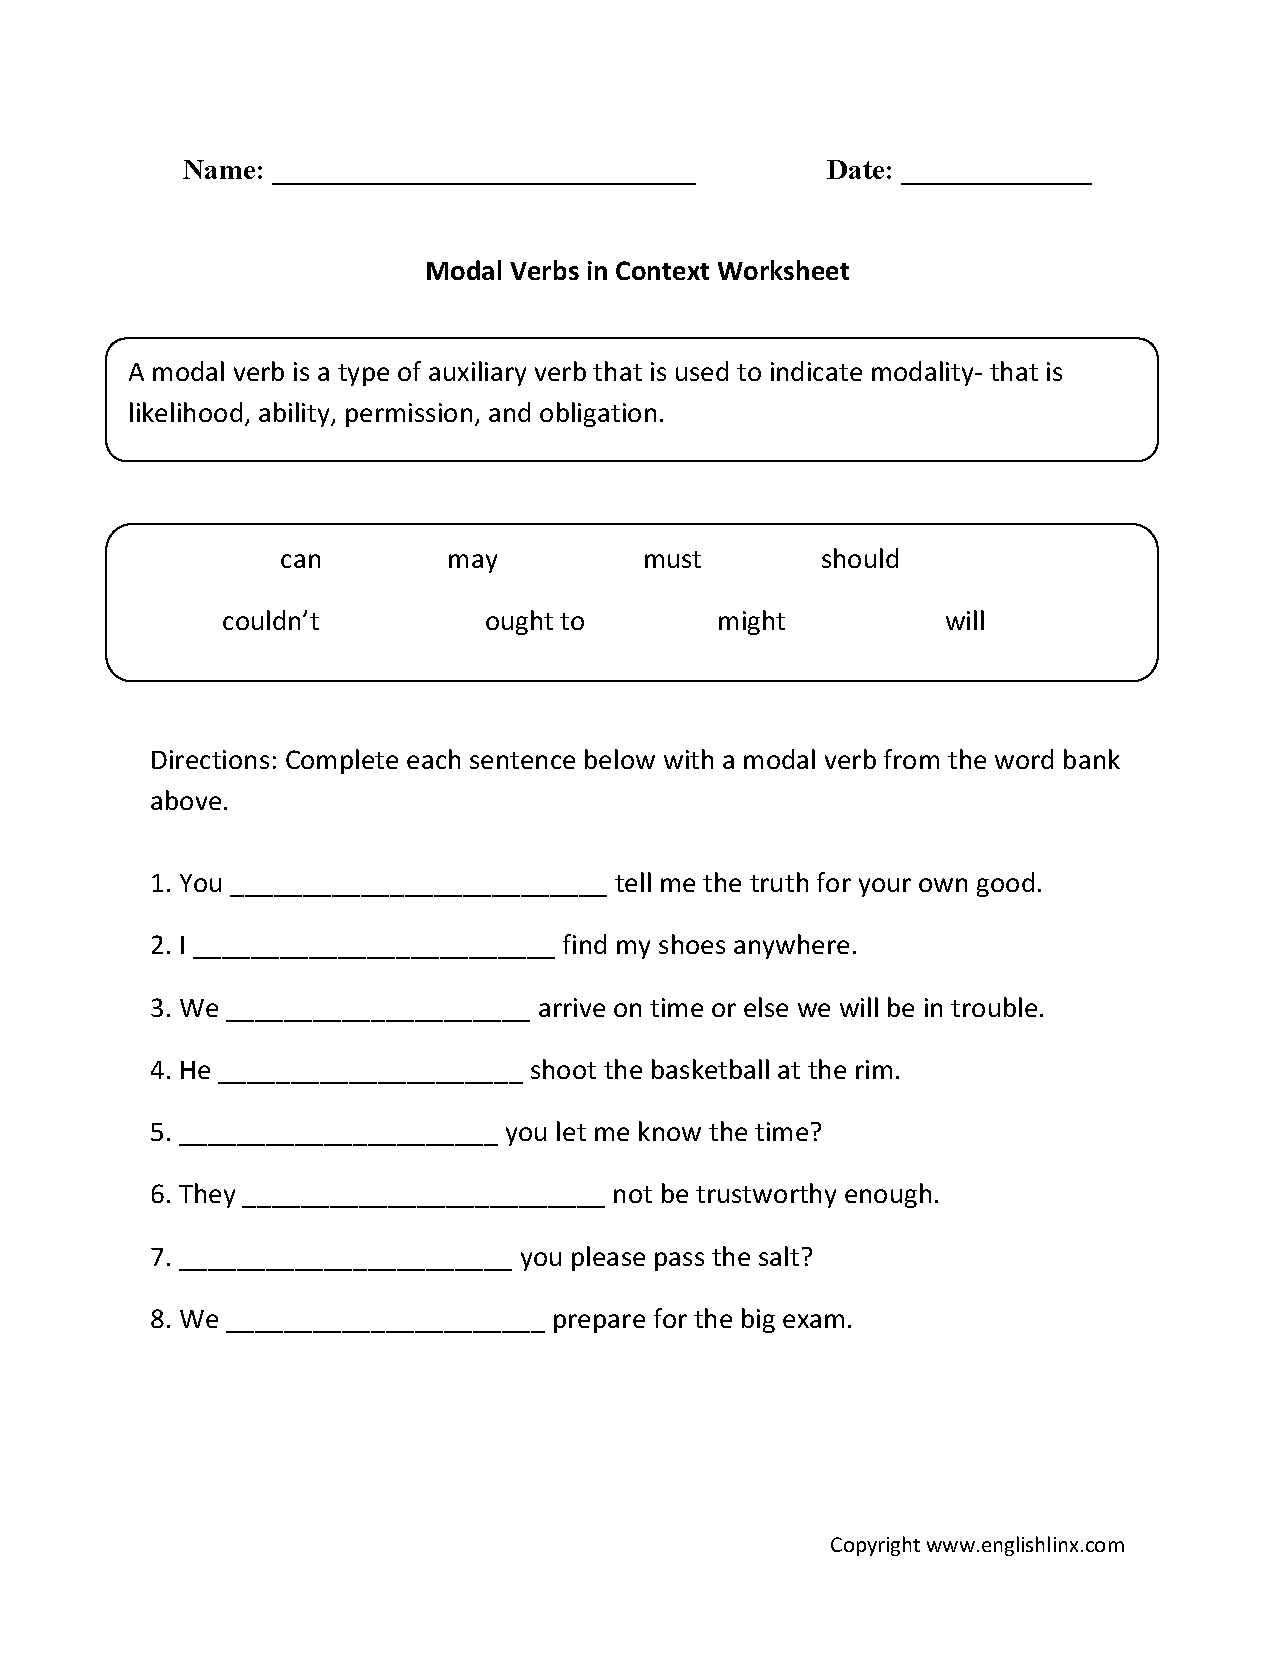 Aldiablosus  Personable Worksheet On Verb  Coffemix With Heavenly Englishlinxcom  Verbs Worksheets With Alluring Avoiding Plagiarism Worksheet Also Word Of The Day Worksheet In Addition Ratio Worksheets Pdf And Second Grade Time Worksheets As Well As Th Grade Graphing Worksheets Additionally Net Forces Worksheet From Coffemixcom With Aldiablosus  Heavenly Worksheet On Verb  Coffemix With Alluring Englishlinxcom  Verbs Worksheets And Personable Avoiding Plagiarism Worksheet Also Word Of The Day Worksheet In Addition Ratio Worksheets Pdf From Coffemixcom